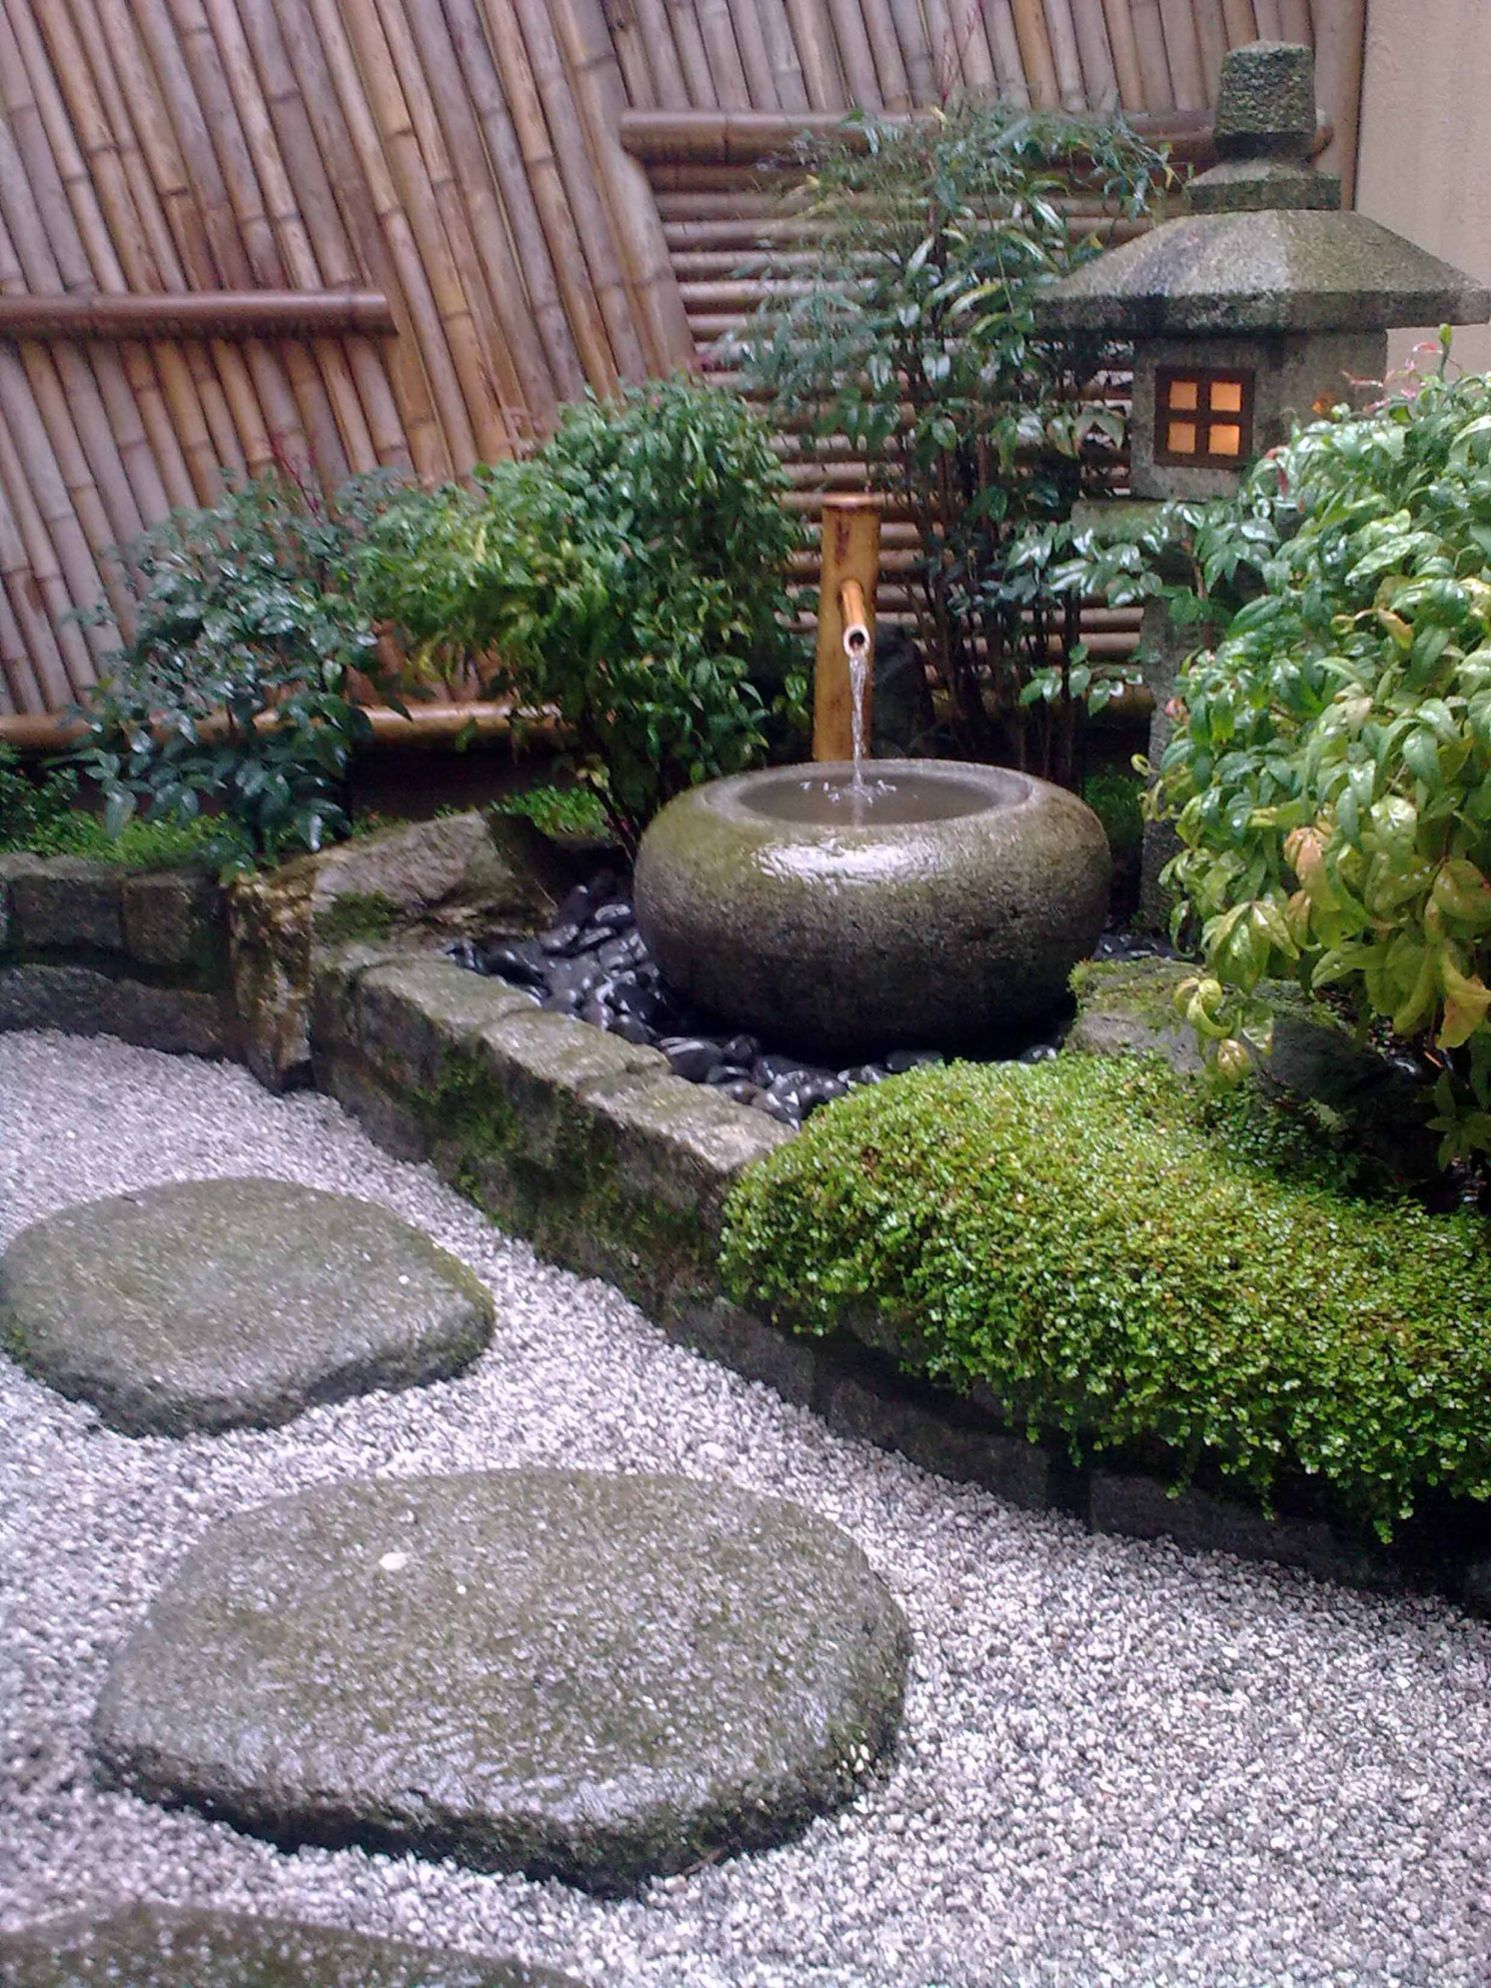 Top 10 Beautiful Zen Garden Ideas For Backyard | Small ... on Small Backyard Japanese Garden Ideas id=54799